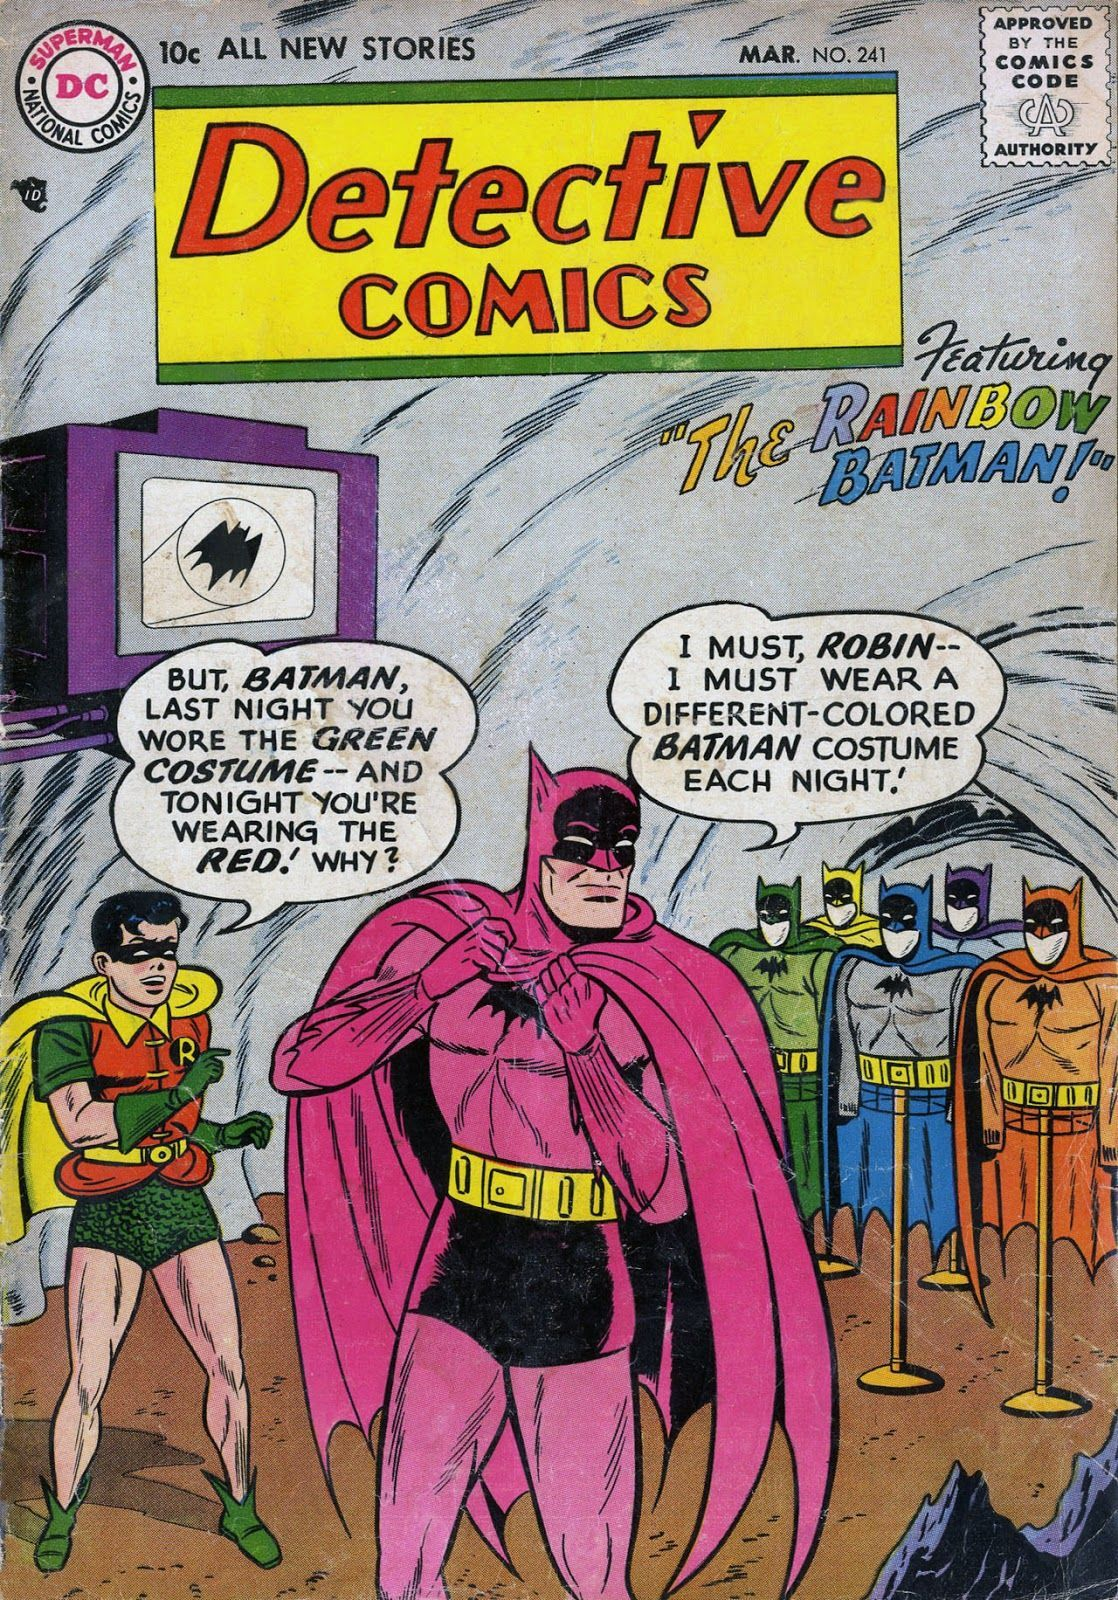 Detective Comics #241 (Writer: Edmond Hamilton, Artists: Sheldon Moldoff, Stan Kaye)241 rainbow 1957